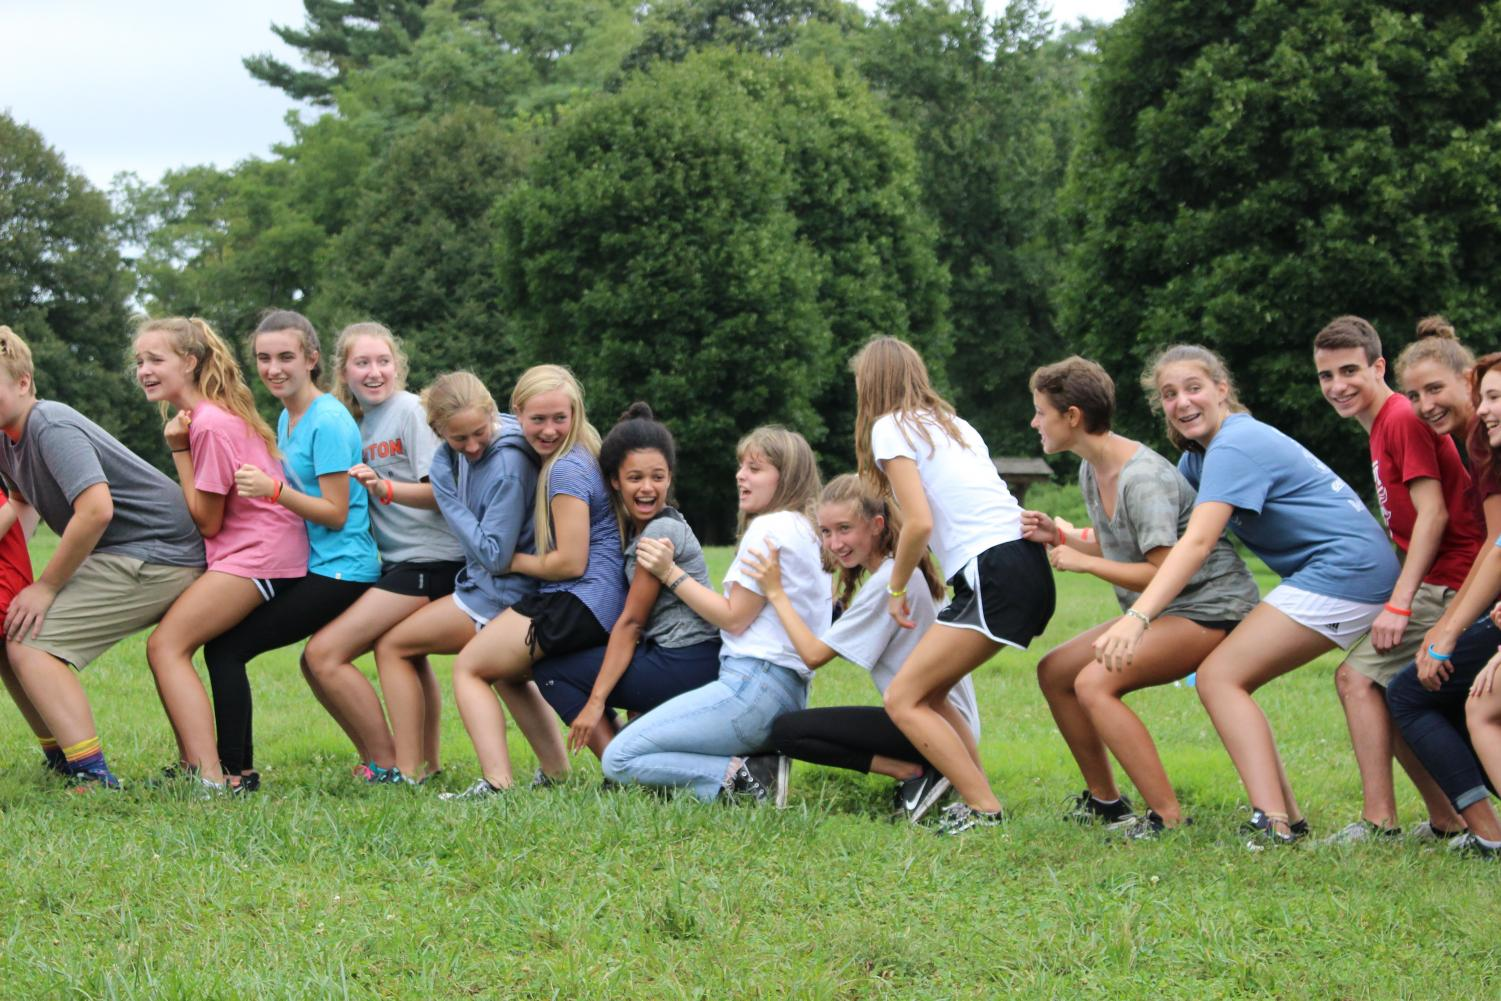 The Class of 2022 bonded through a variety of games and activities on Friday.